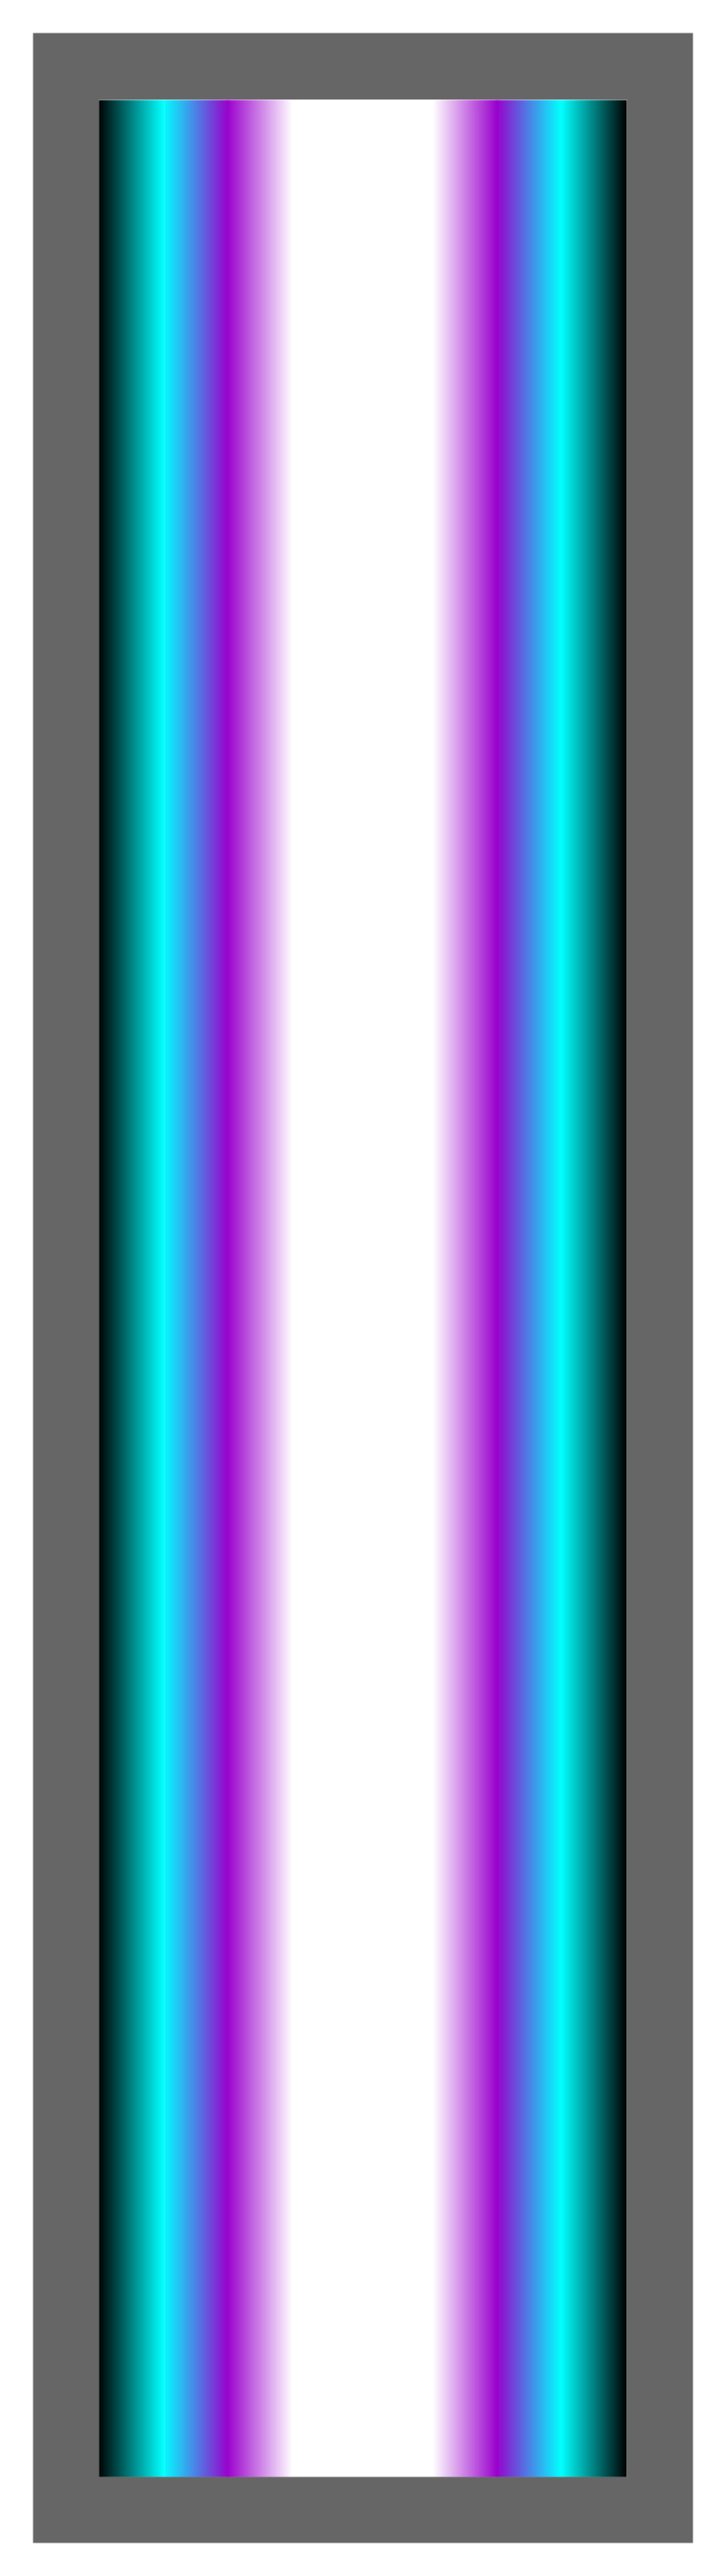 Black-Aqua-Purple-White Ombre Stripe